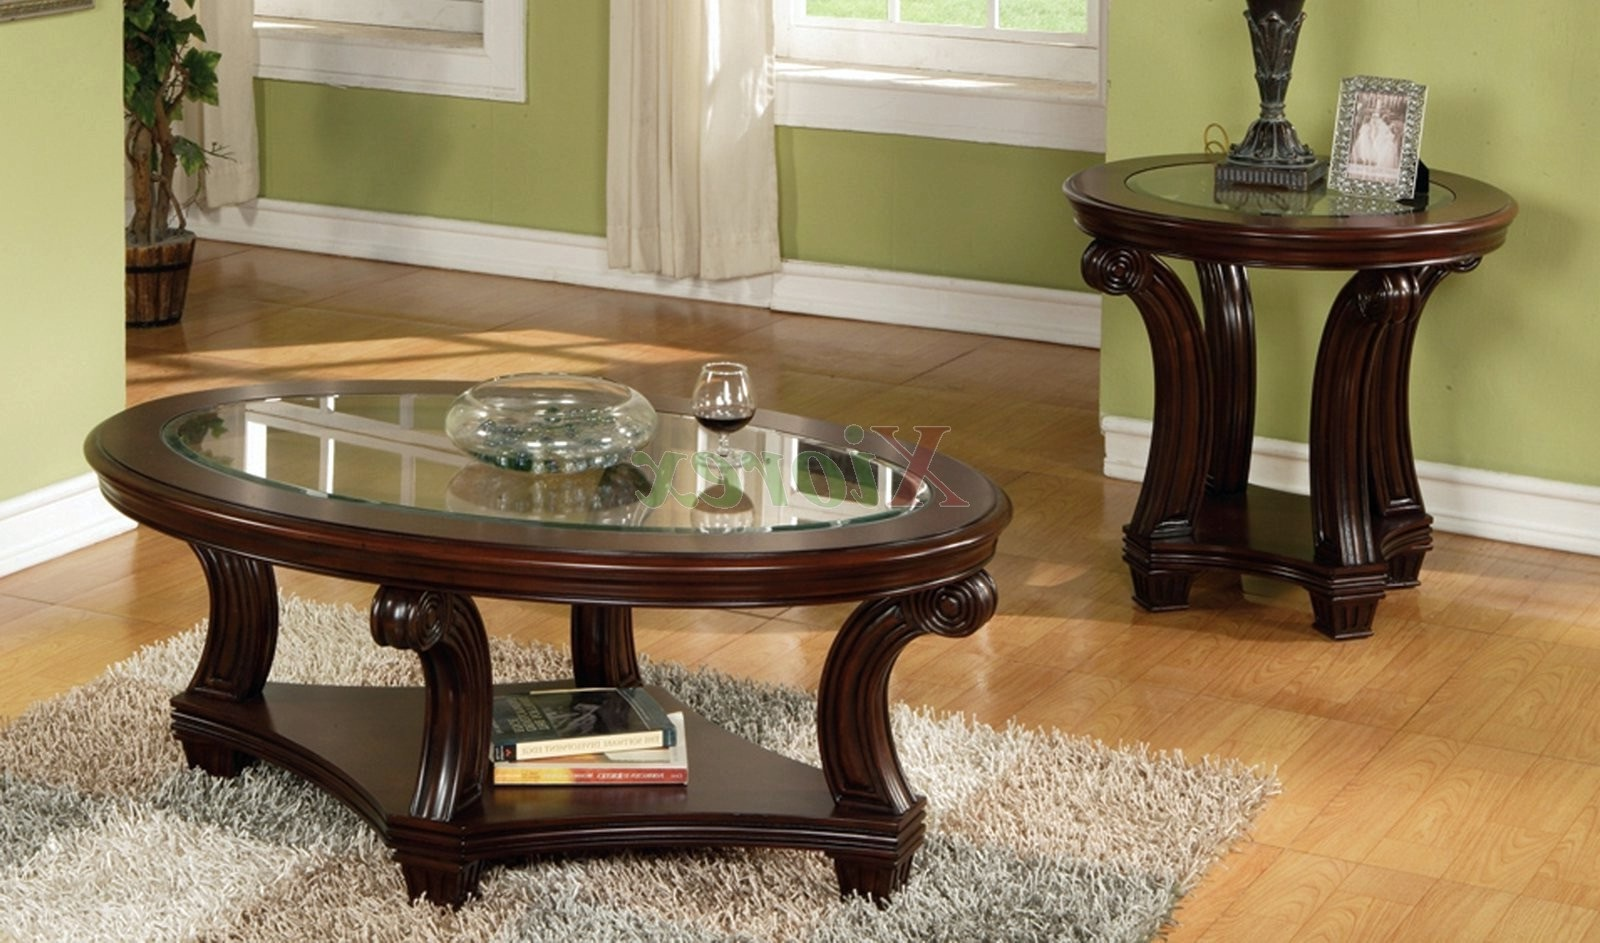 perseus glass top wooden coffee table set montreal round and end sets dark wood side tables design aztec calendar stone kids small bookshelf nightstand west elm collection